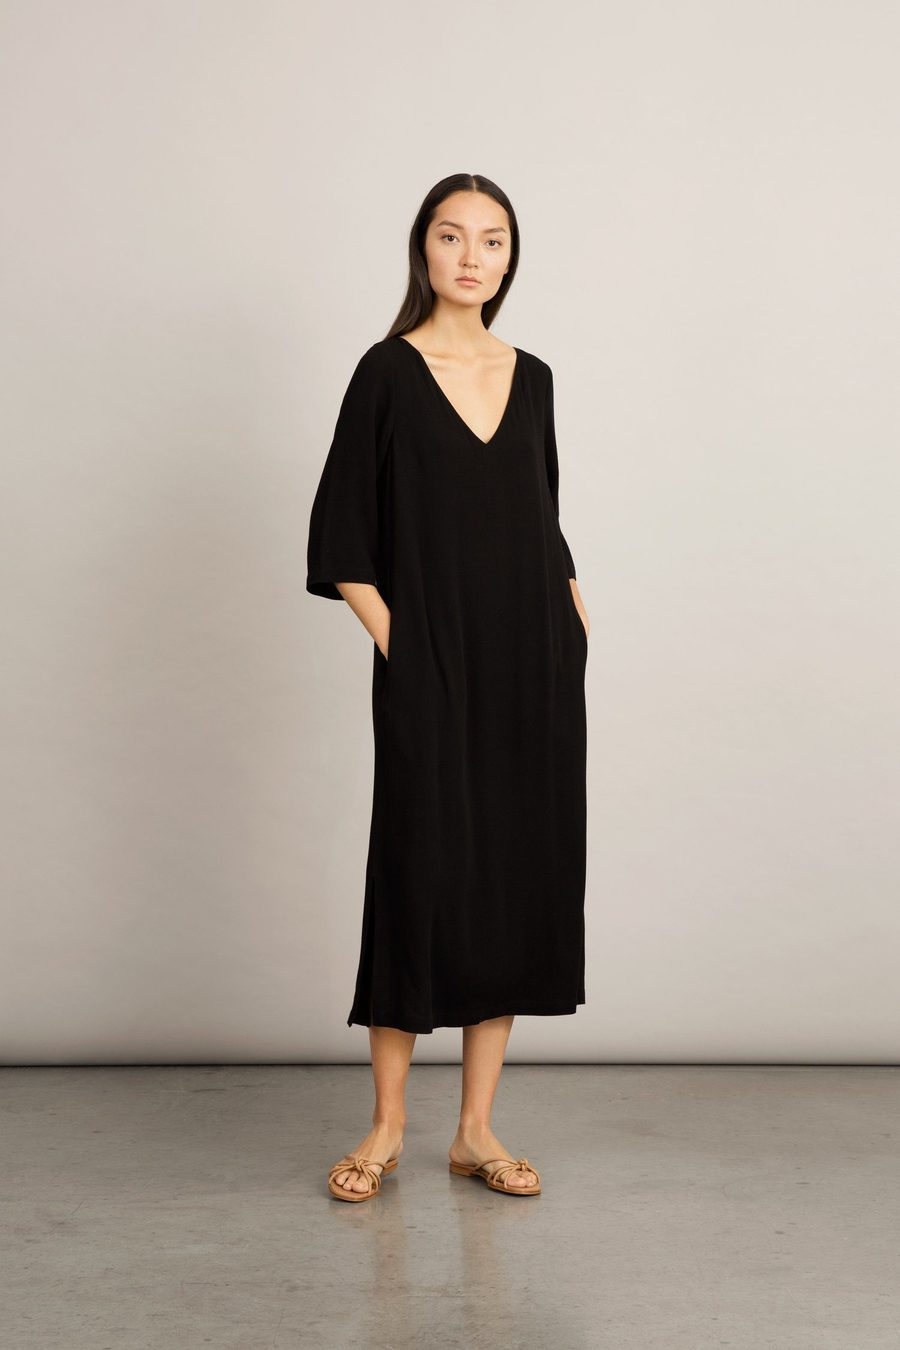 senna-dress-black-dress-stylein-625282_900x.jpg